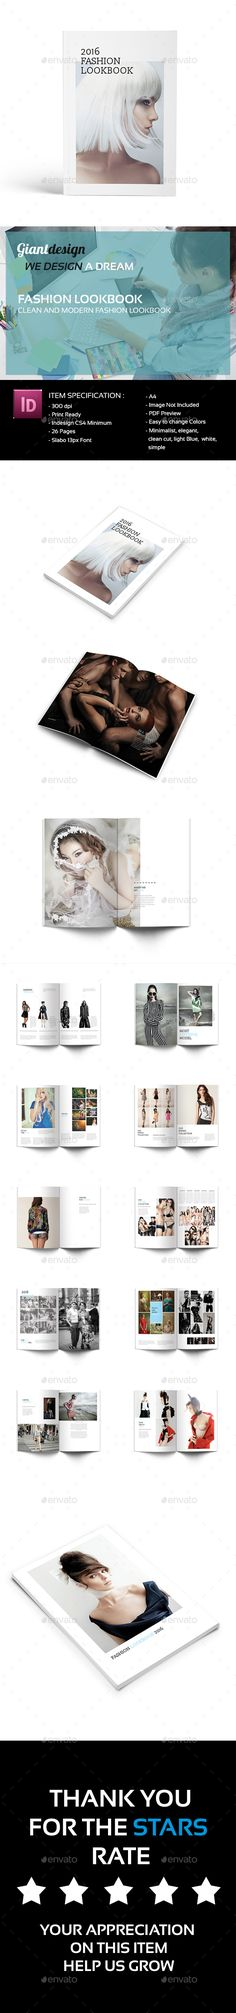 A Successful Fashion Brochure Design Can Grow Your Fashion